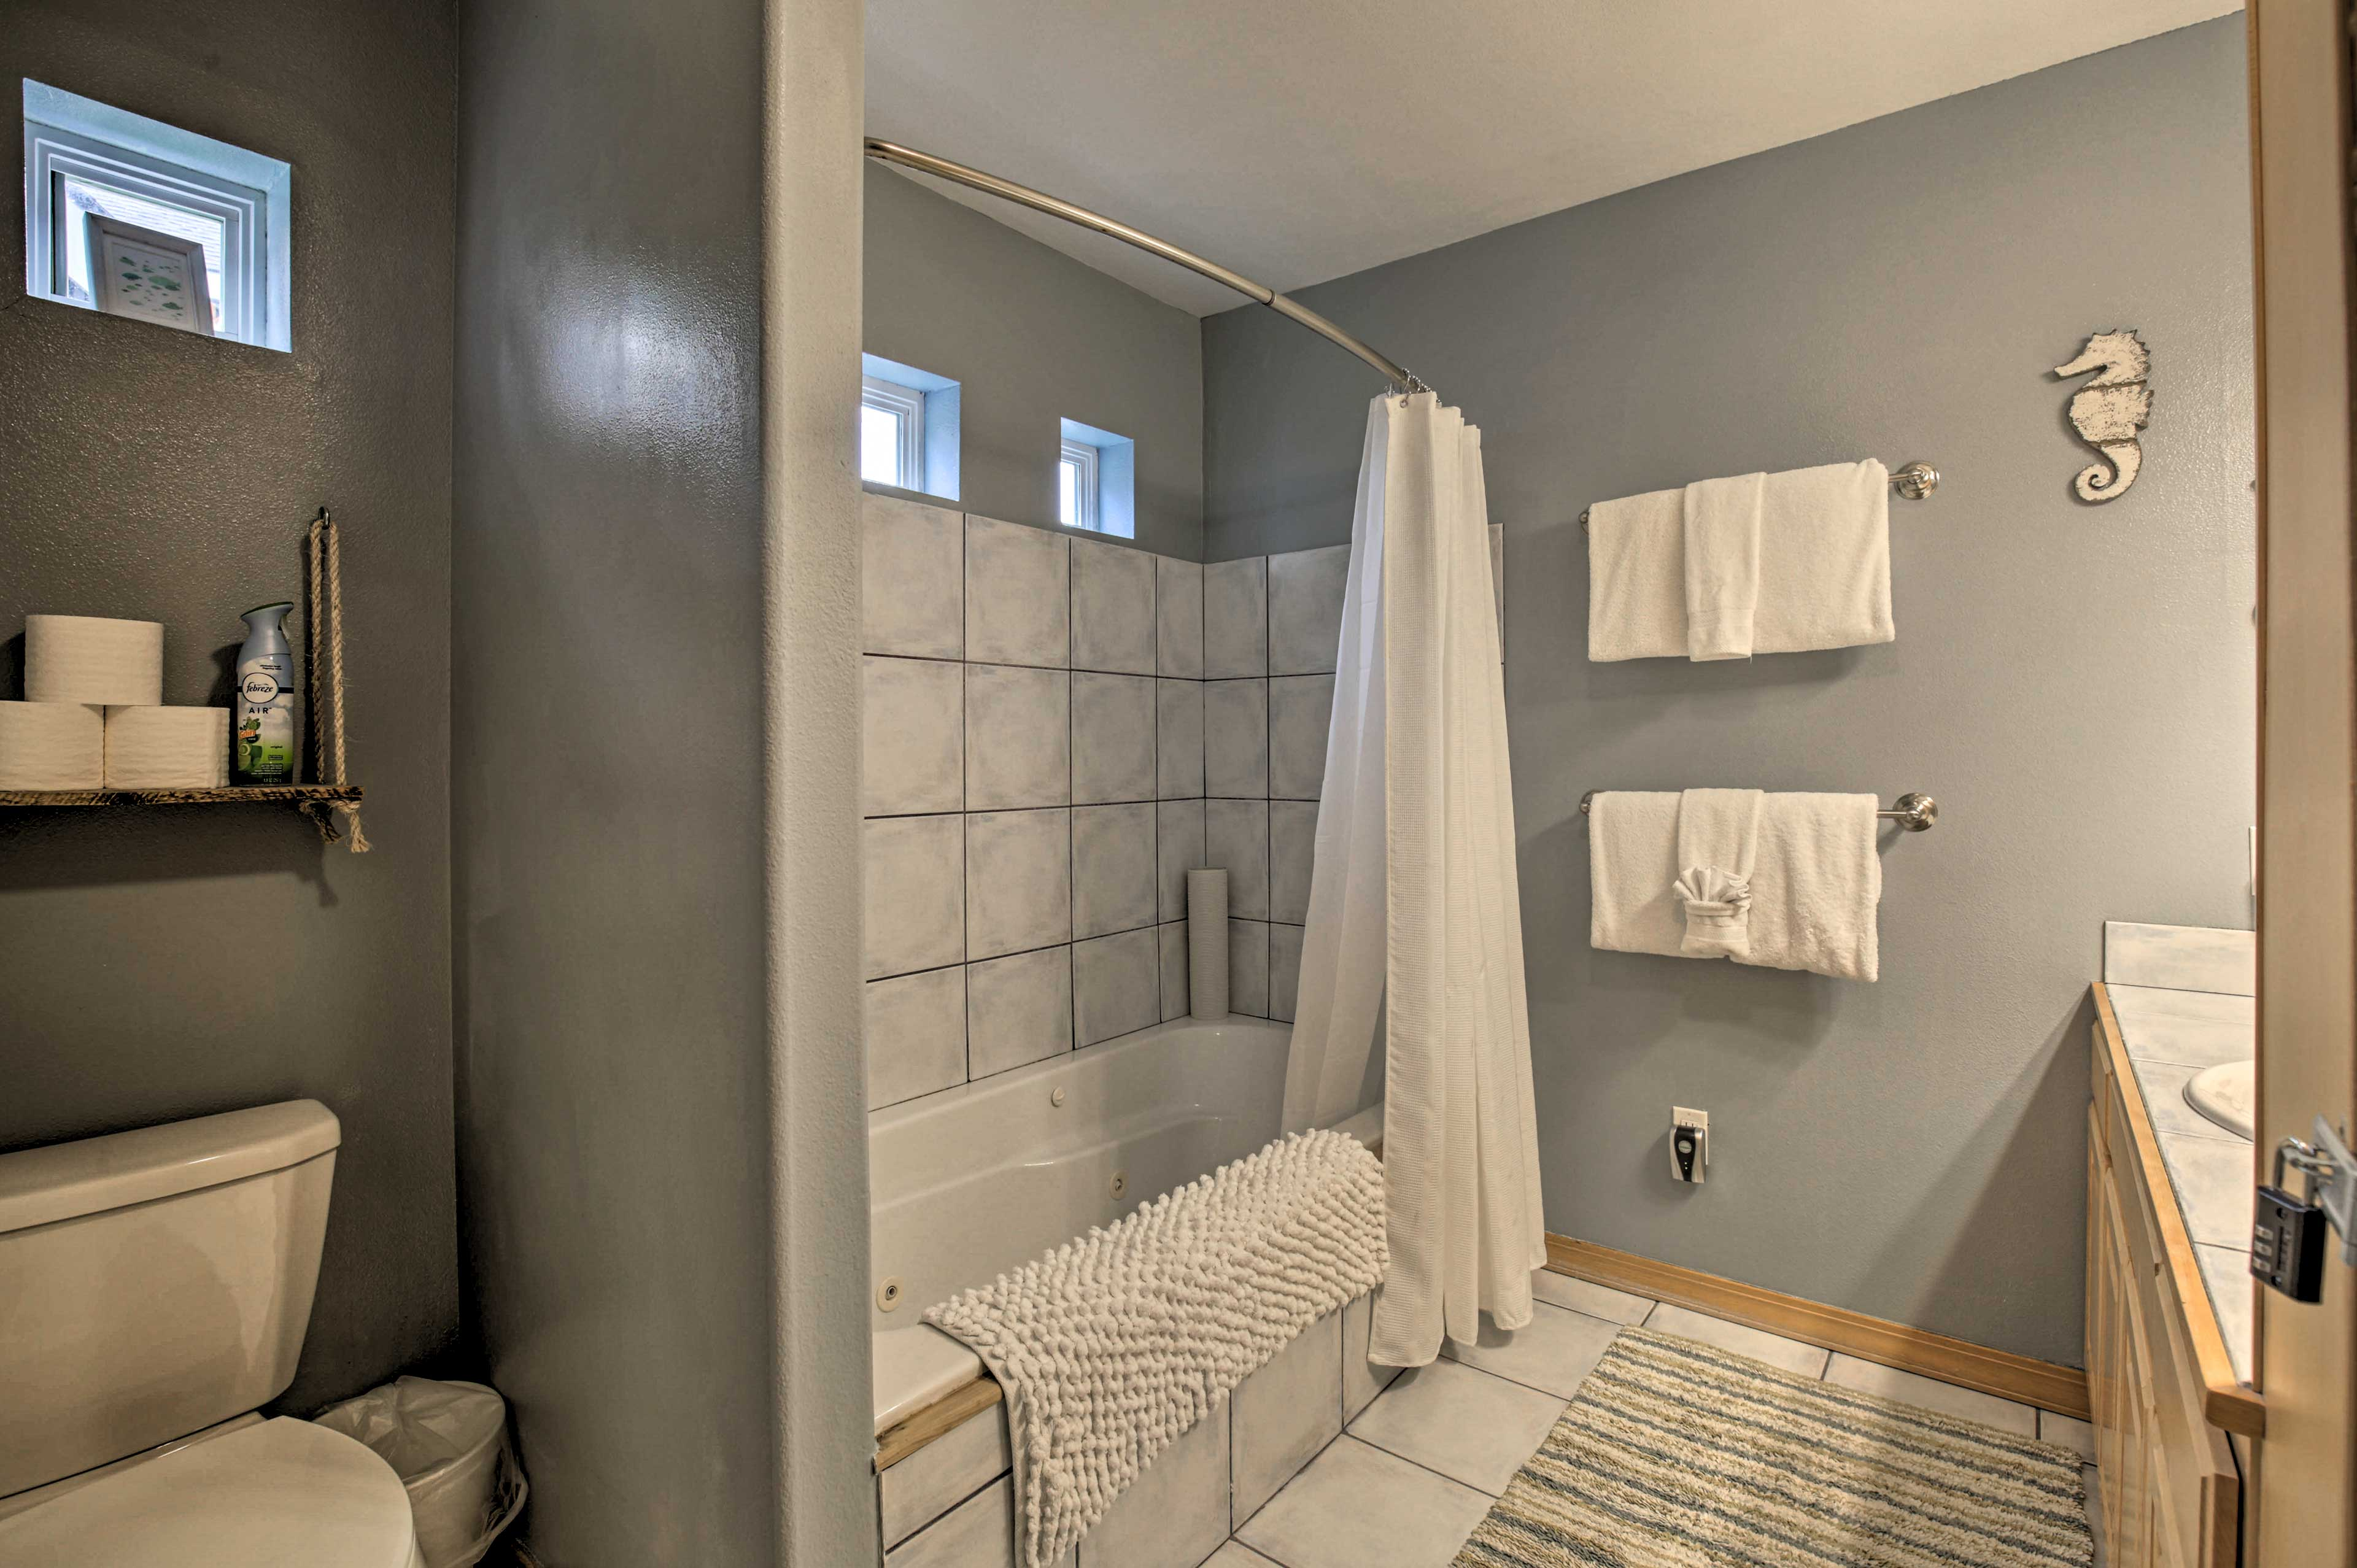 Take a relaxing shower or bath in the jetted tub.